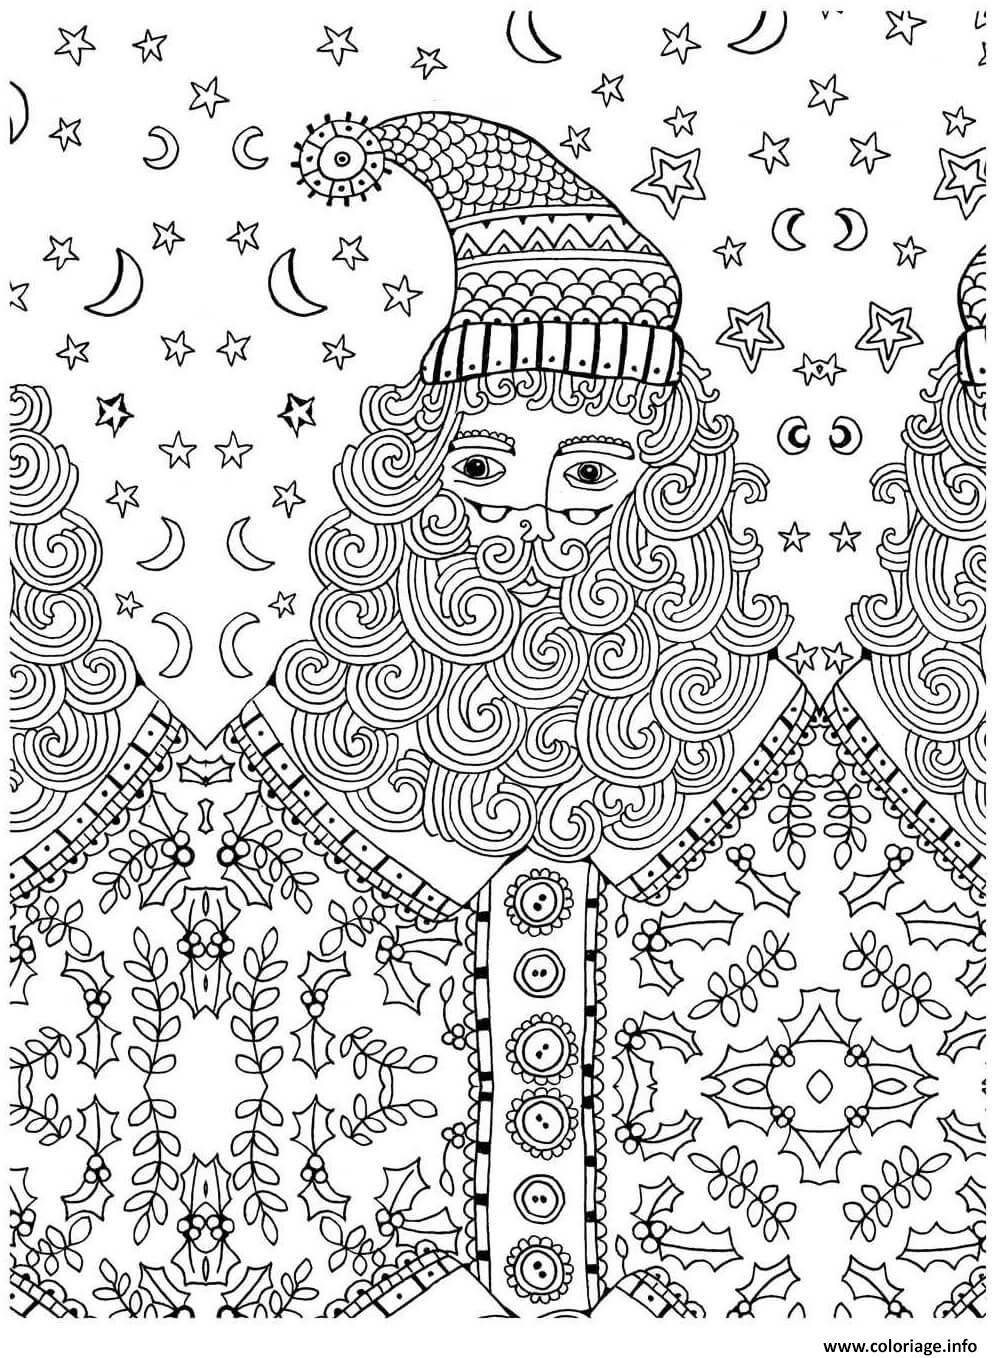 Coloriage pere noel adulte anti stress - Coloriage anti stress a imprimer ...